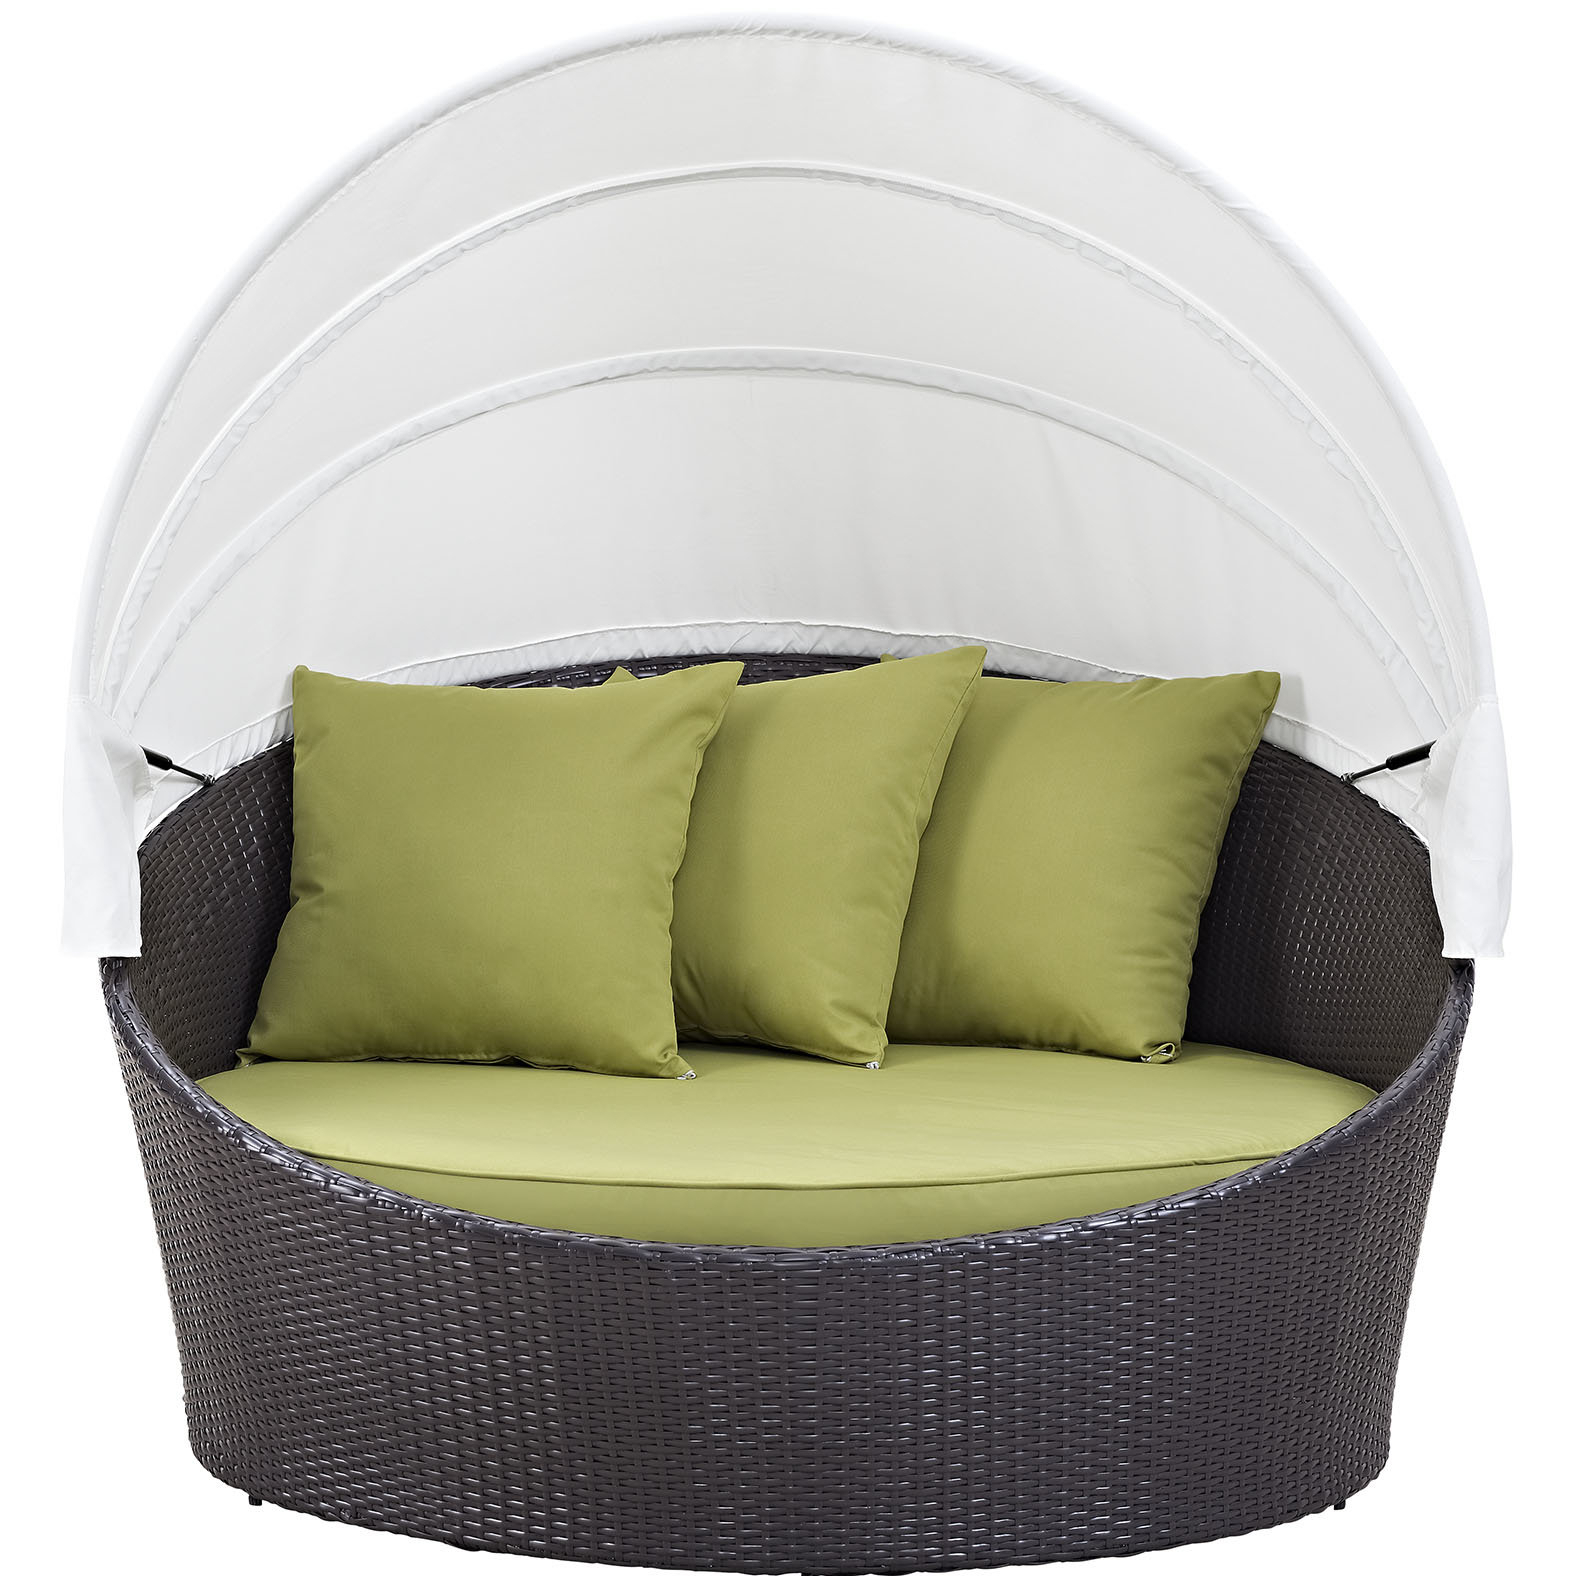 Tiana Patio Daybeds With Cushions Pertaining To Latest Brentwood Canopy Patio Daybed With Cushions (View 19 of 20)